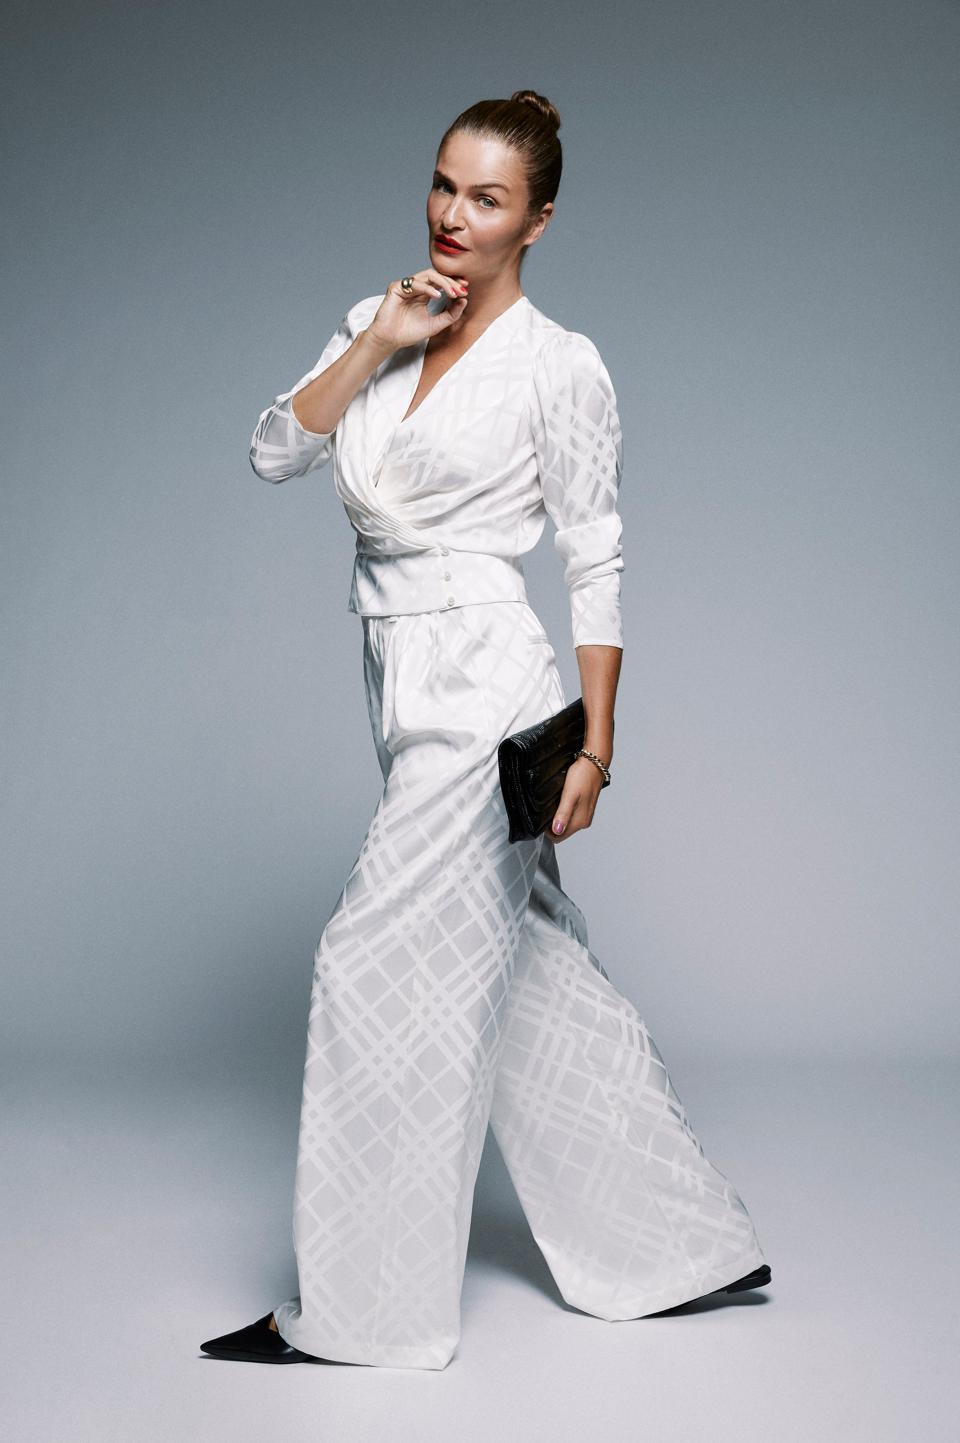 Helena Christensen models a while silk set, part of the model's collaboration with Anine Bing.